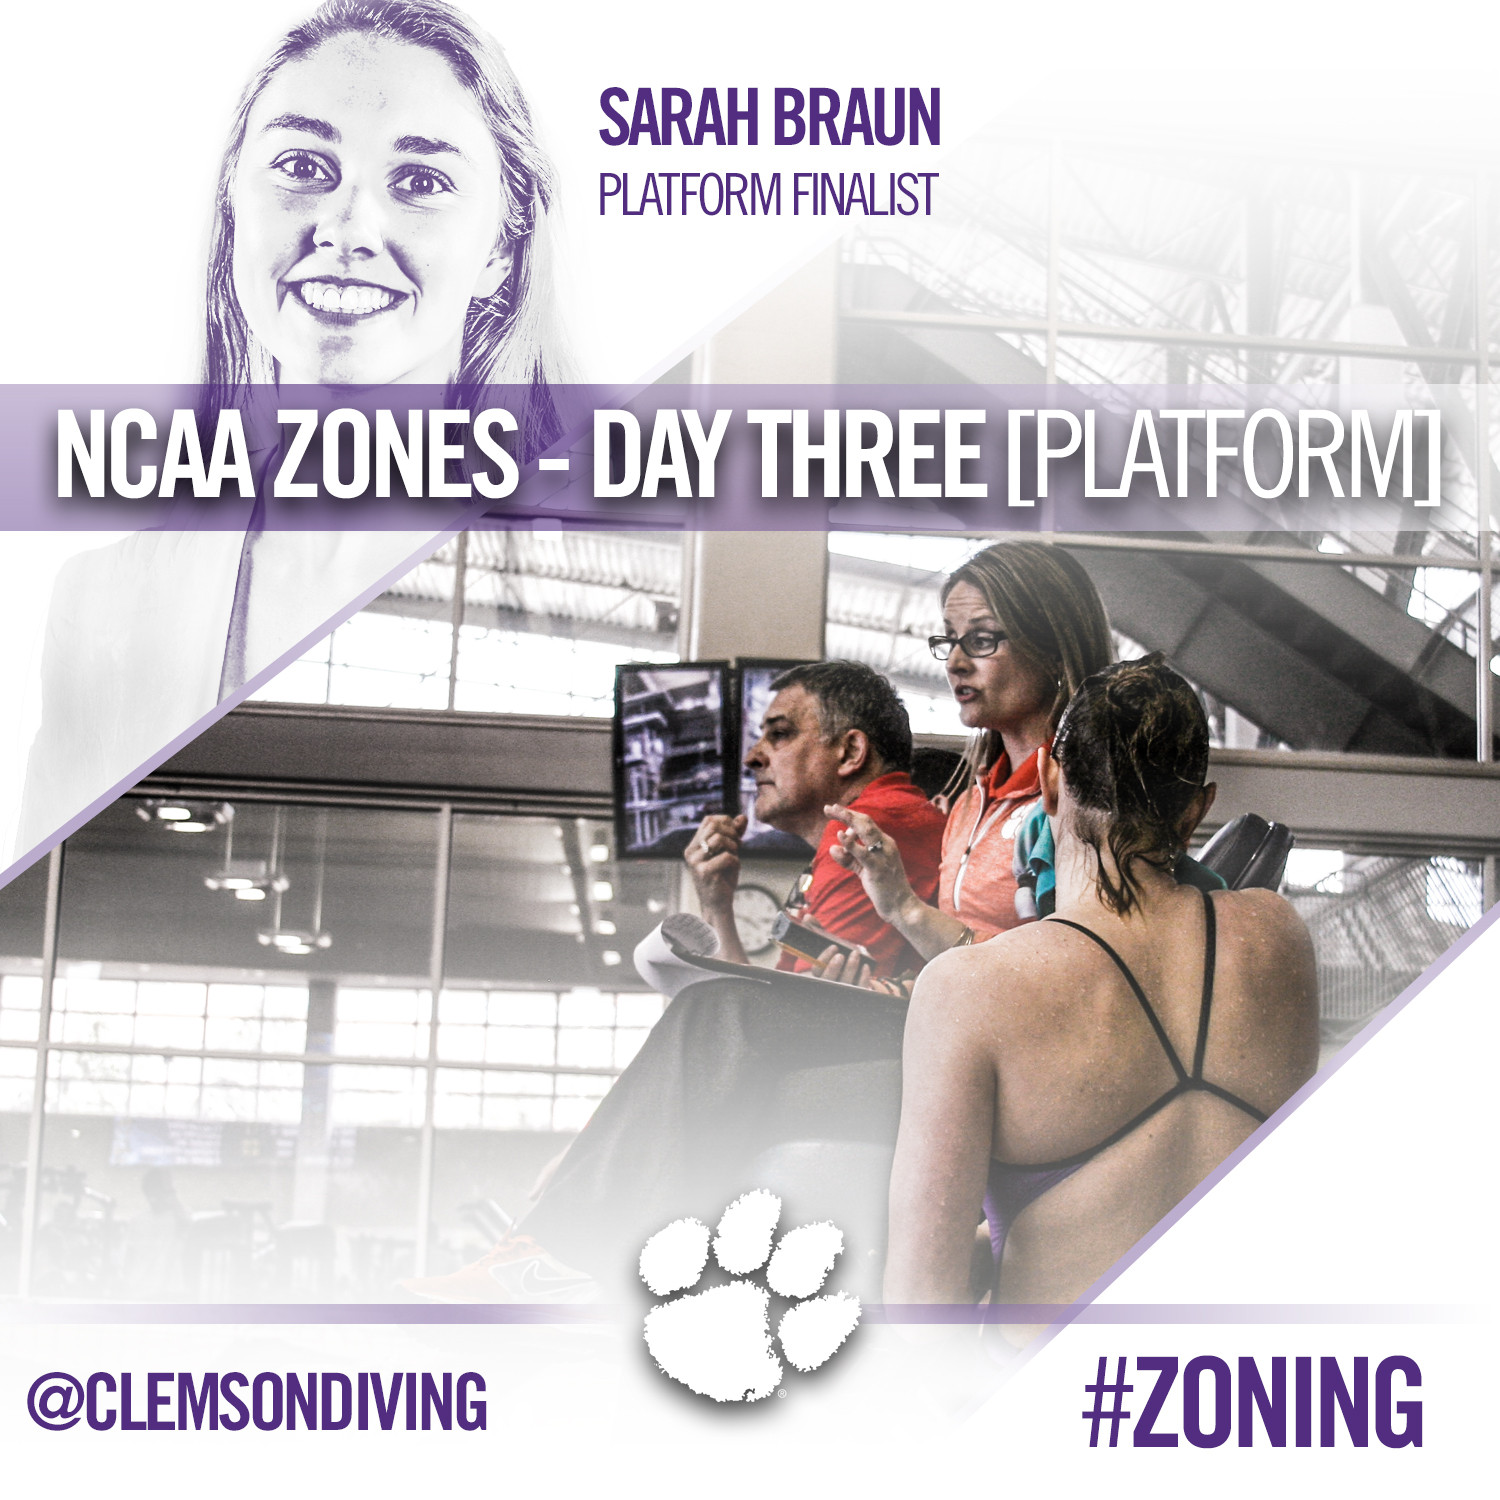 Braun Advances to Platform Finals at NCAA Zone B Championships